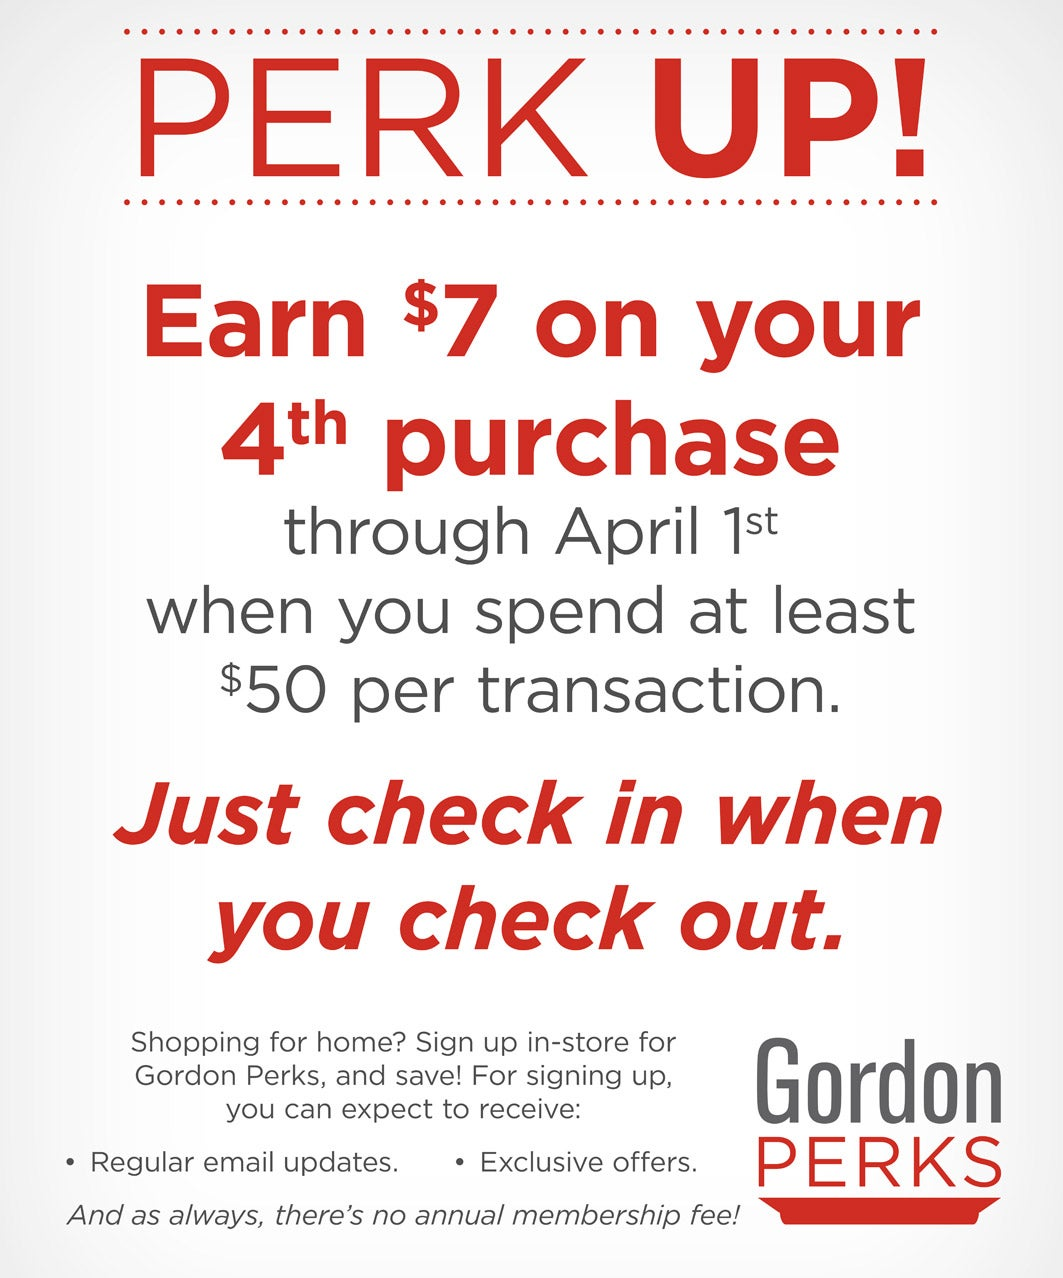 Earn $7 on your 4th purchase through April 1st when you spend at least $50 per transaction.